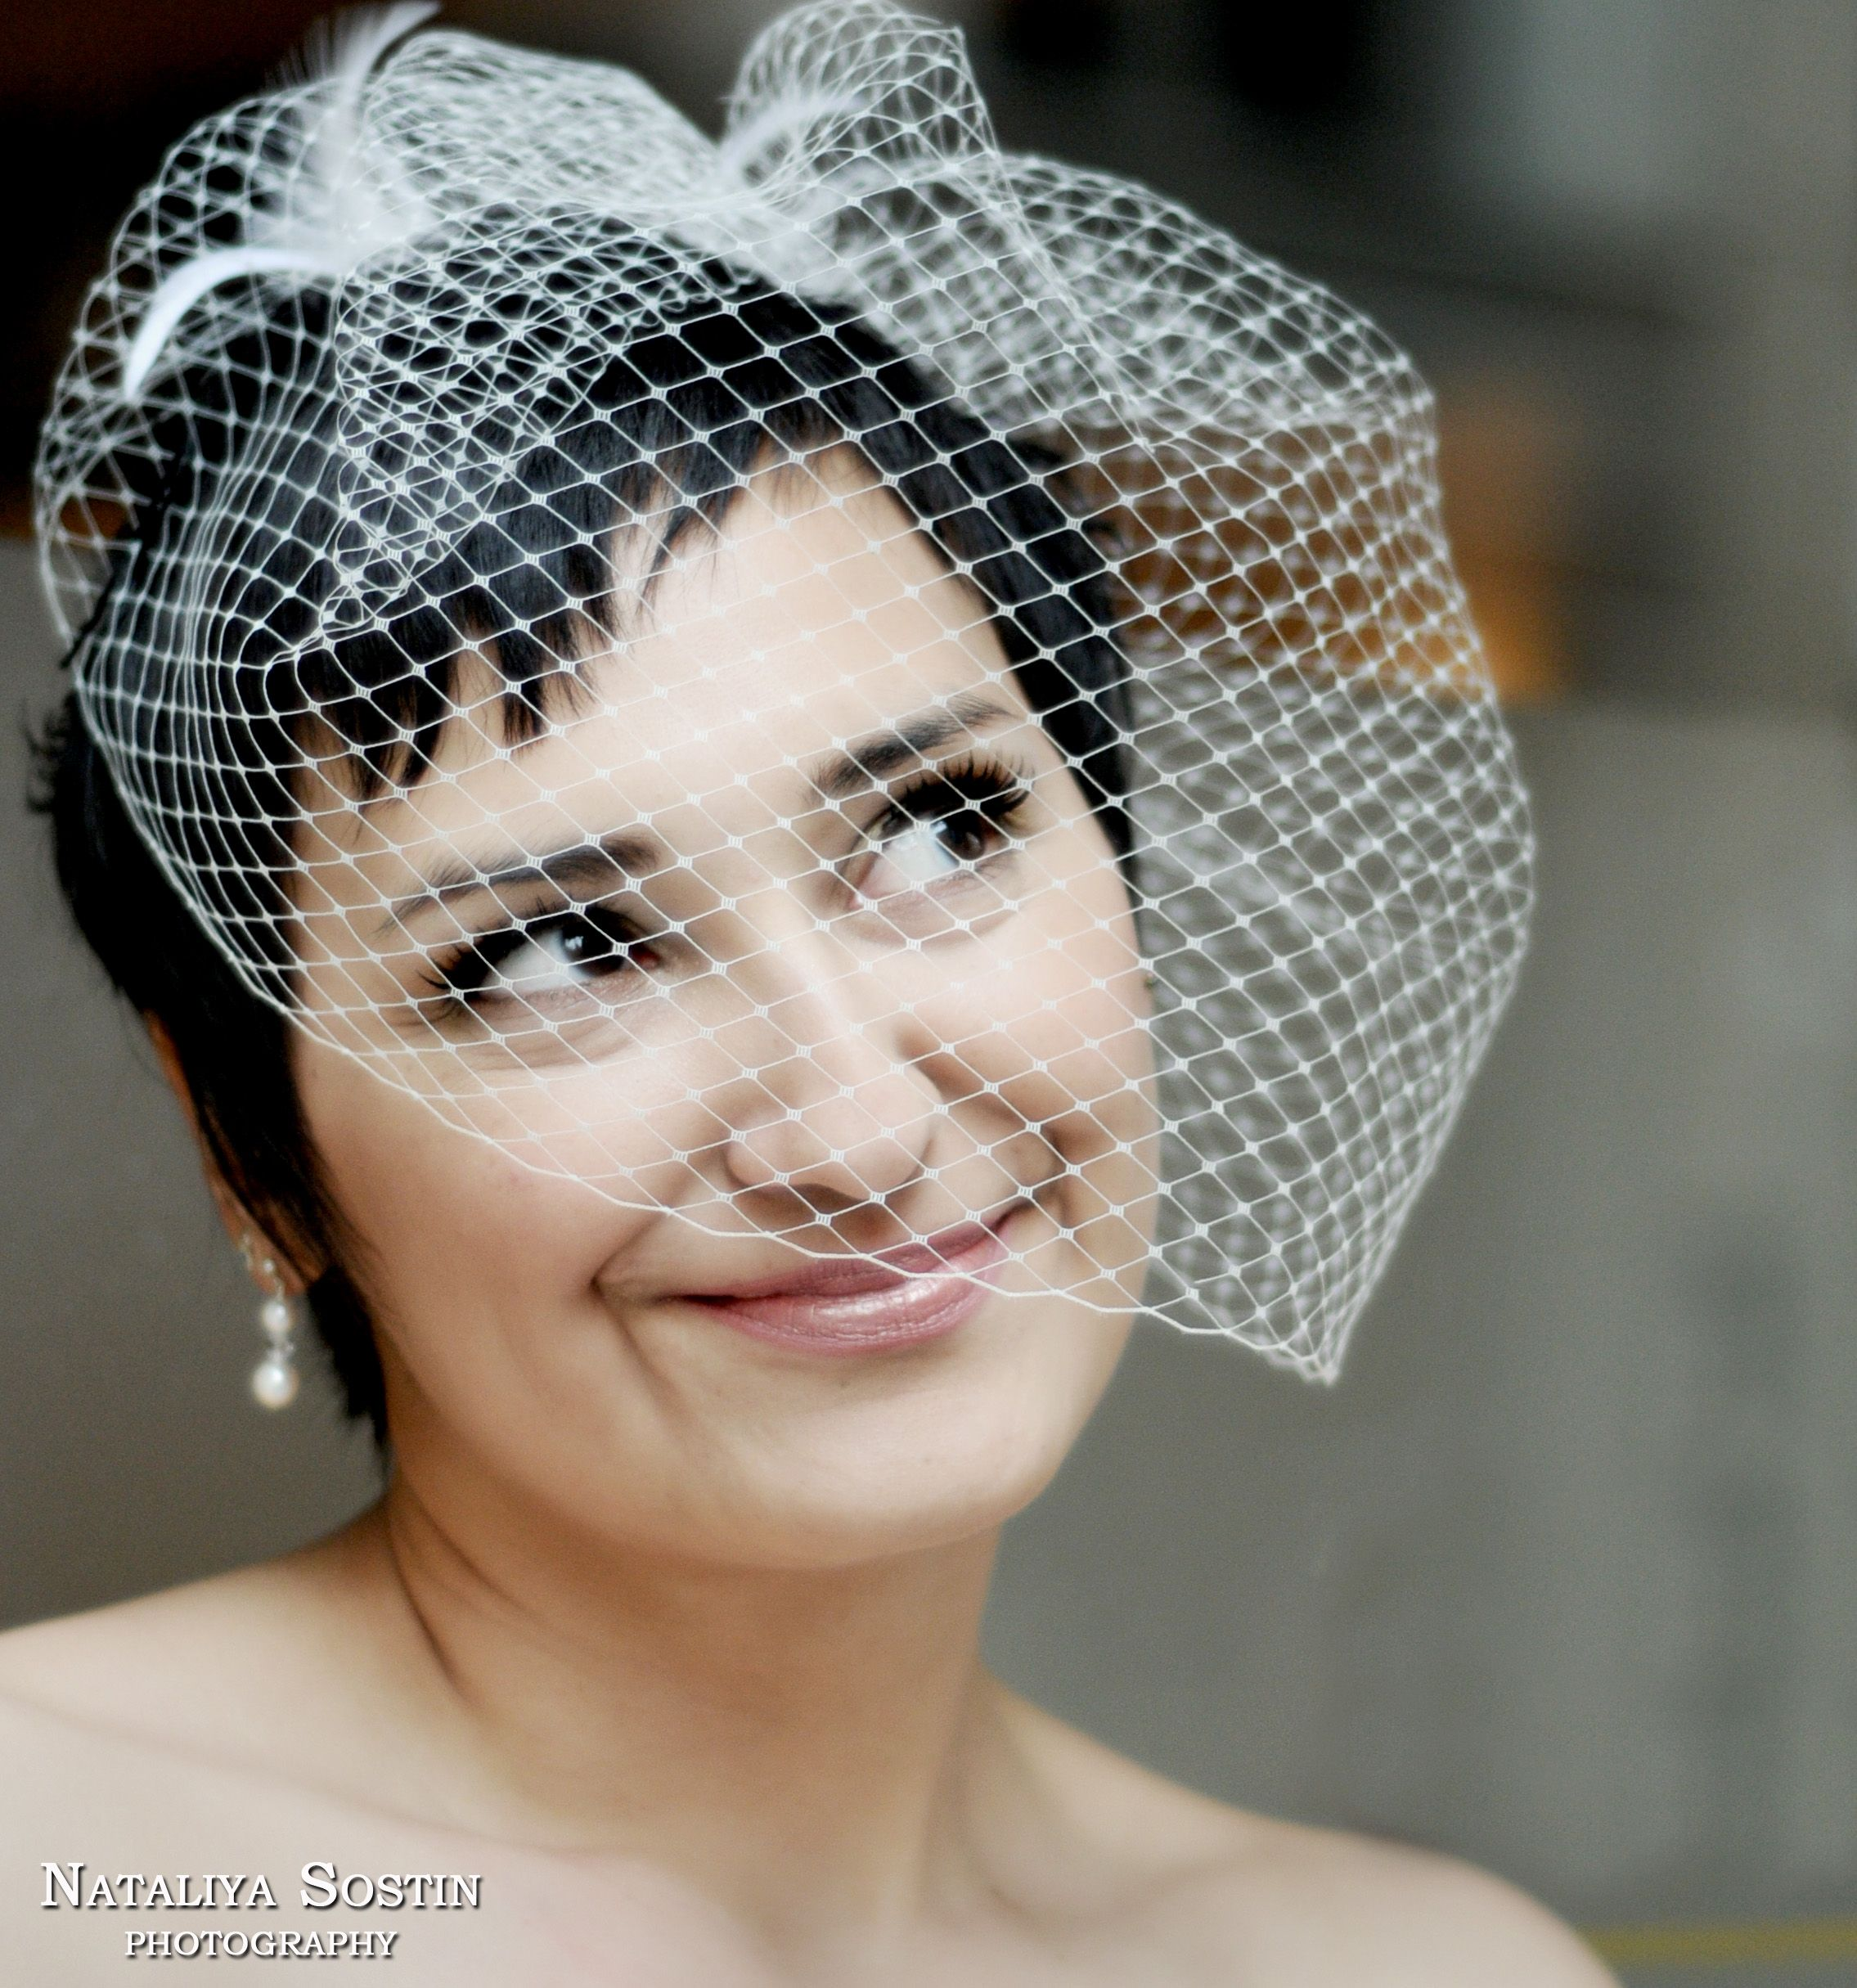 I like the short hair with the birdcage veil!  For me, a bit too much veil, but sucha  pretty look.